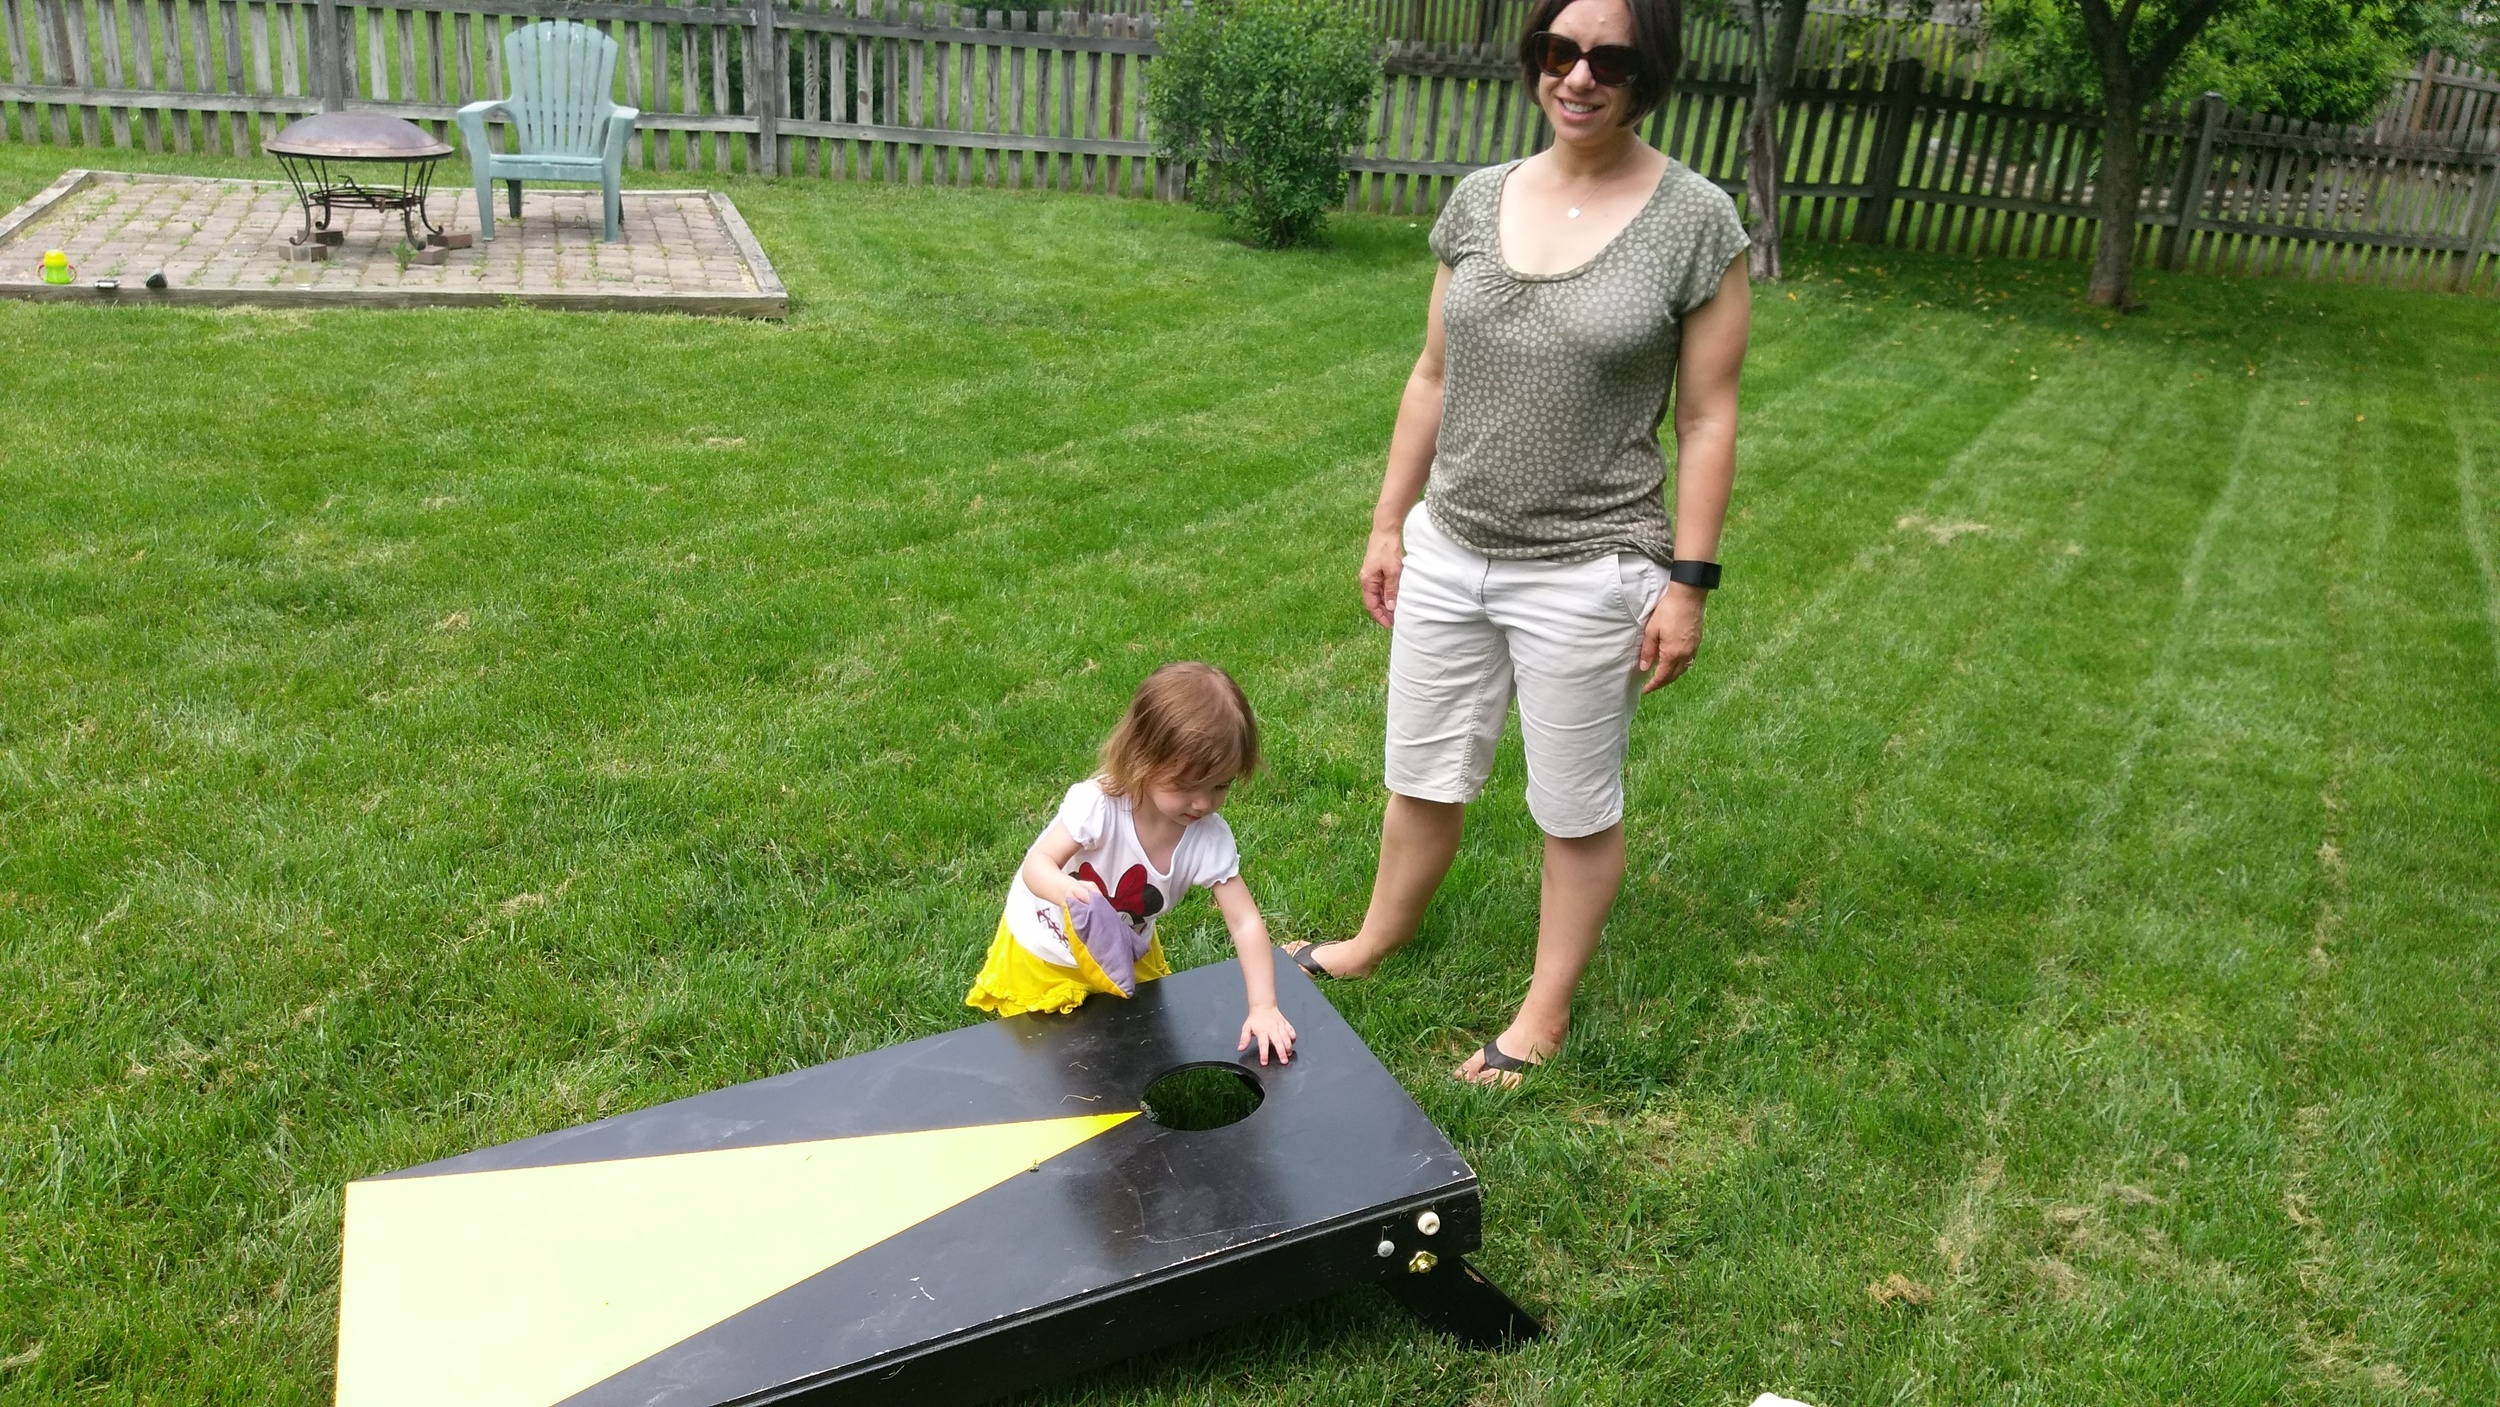 It was such a nice day that Cece decided she wanted to play some cornhole.